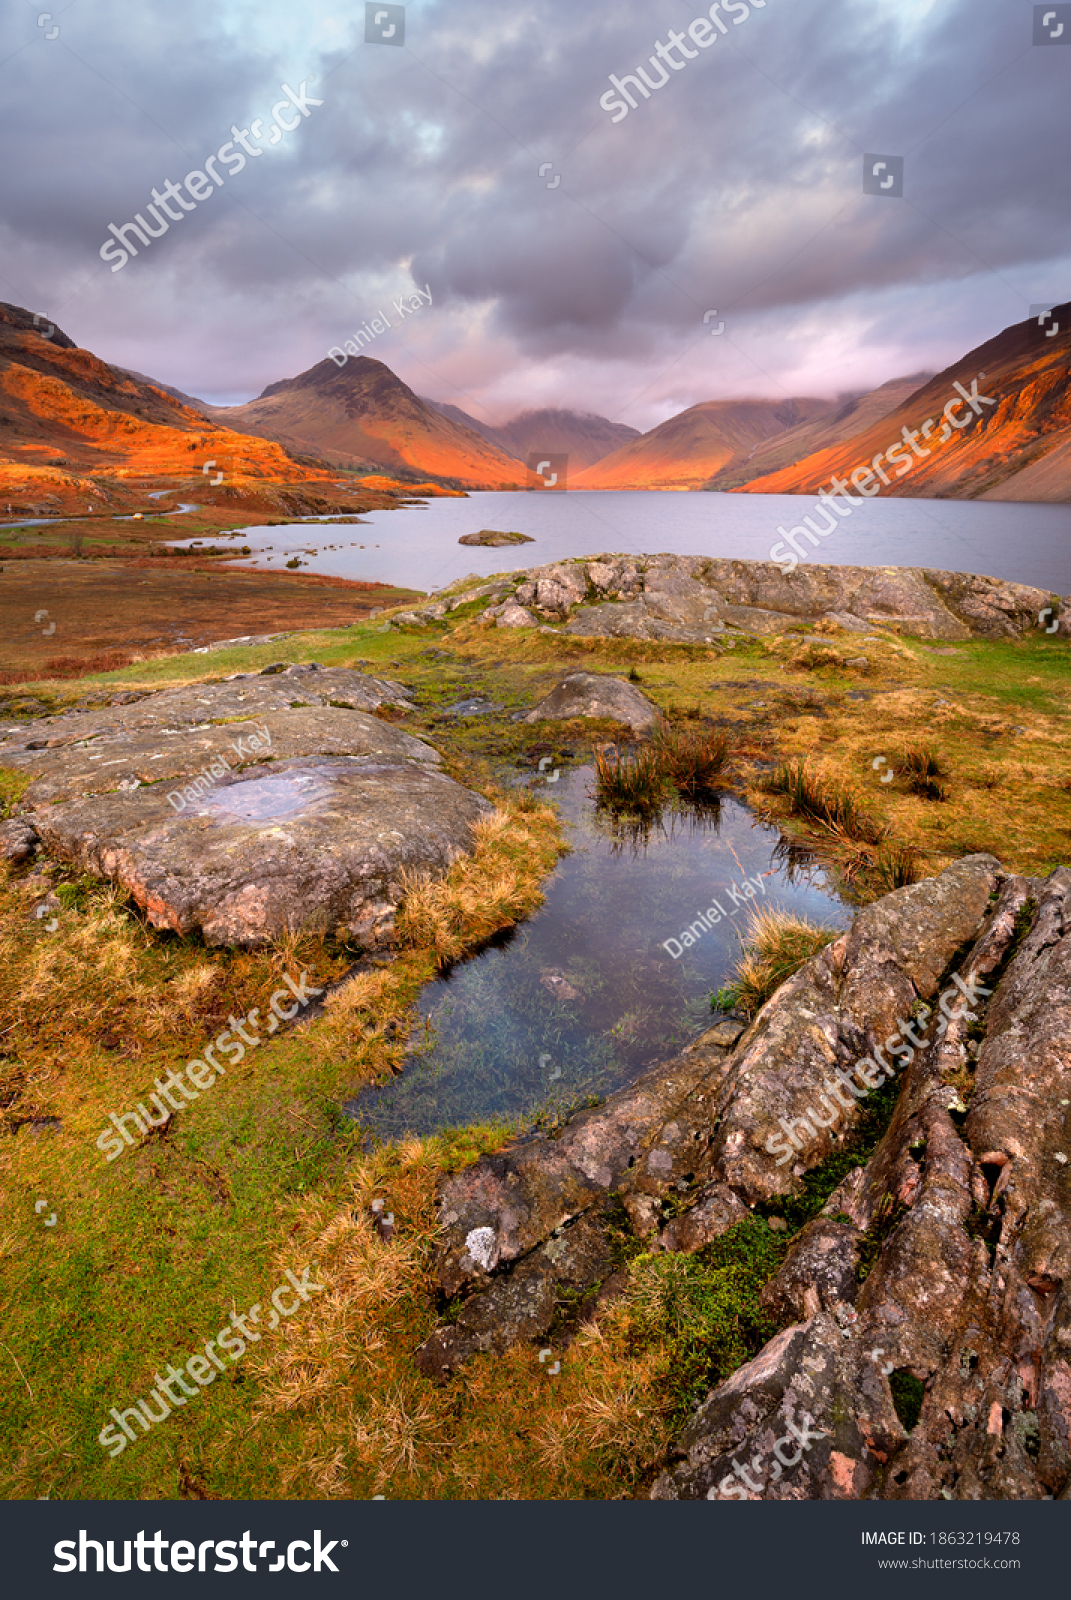 Scenic view of mountains and lake at sunset with golden light and moody clouds. Wastwater, Lake District, UK. #1863219478